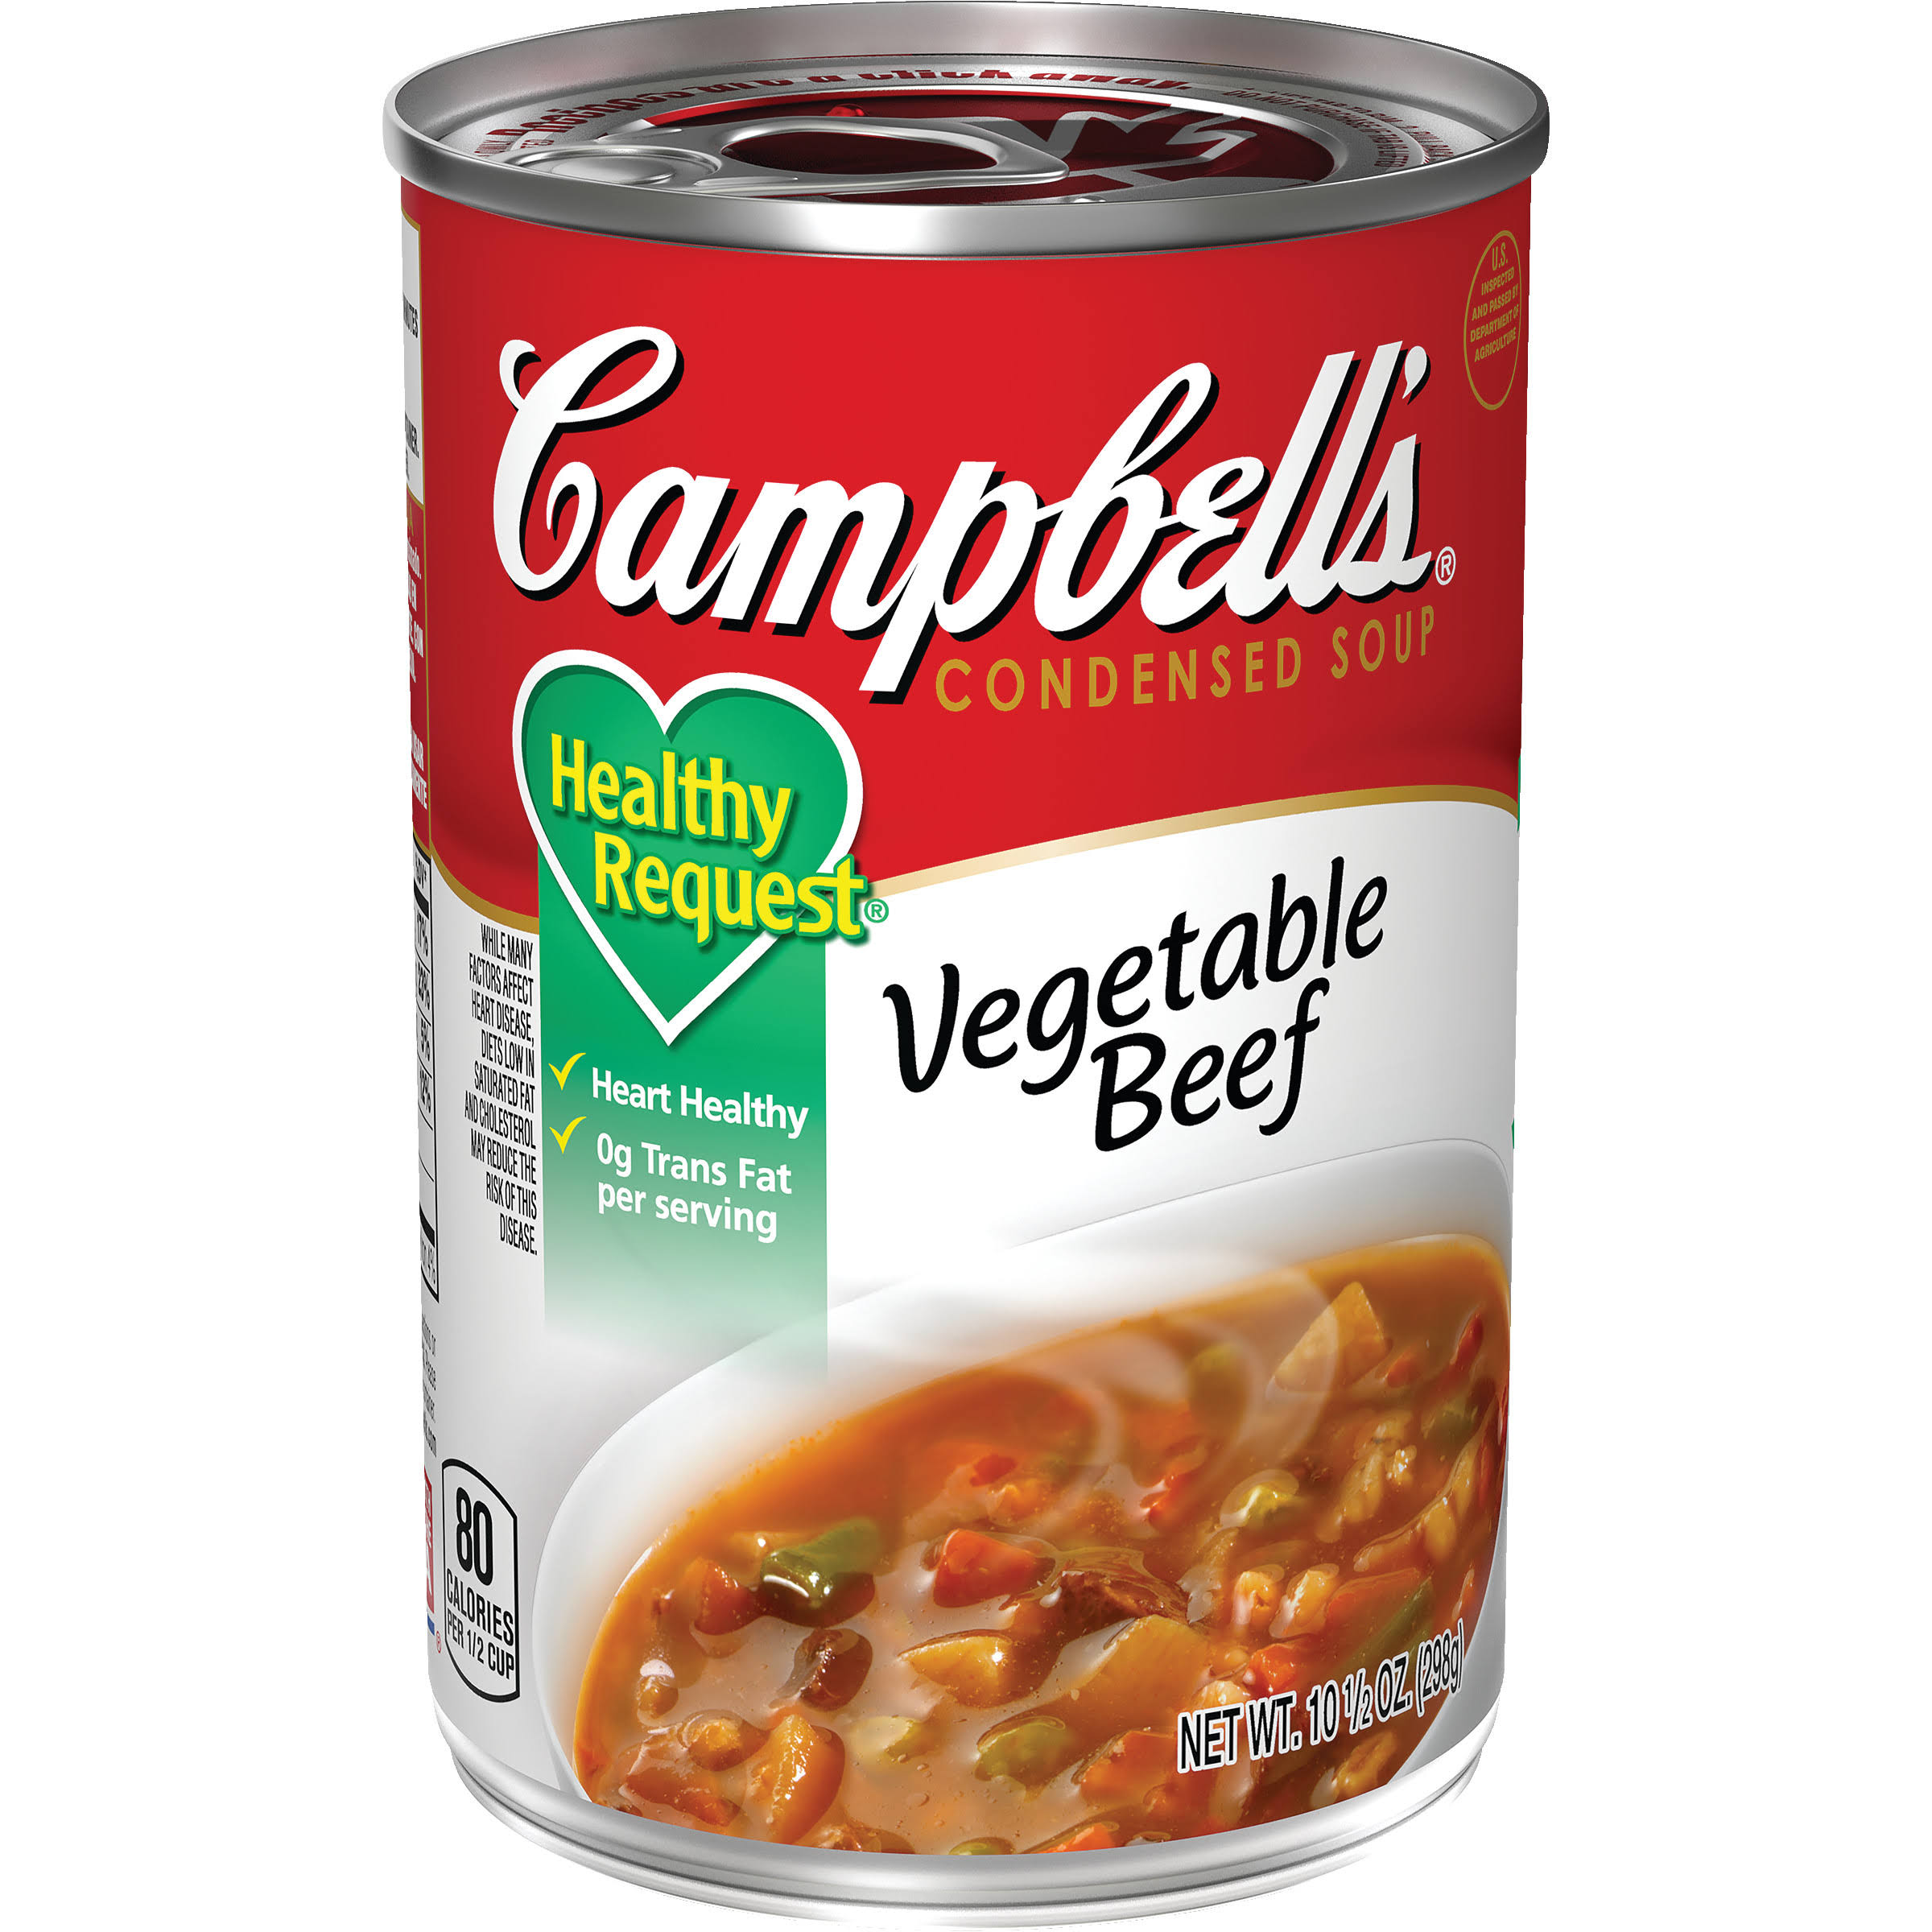 Campbell's Healthy Request Vegetable Beef Condensed Soup - 10.5oz